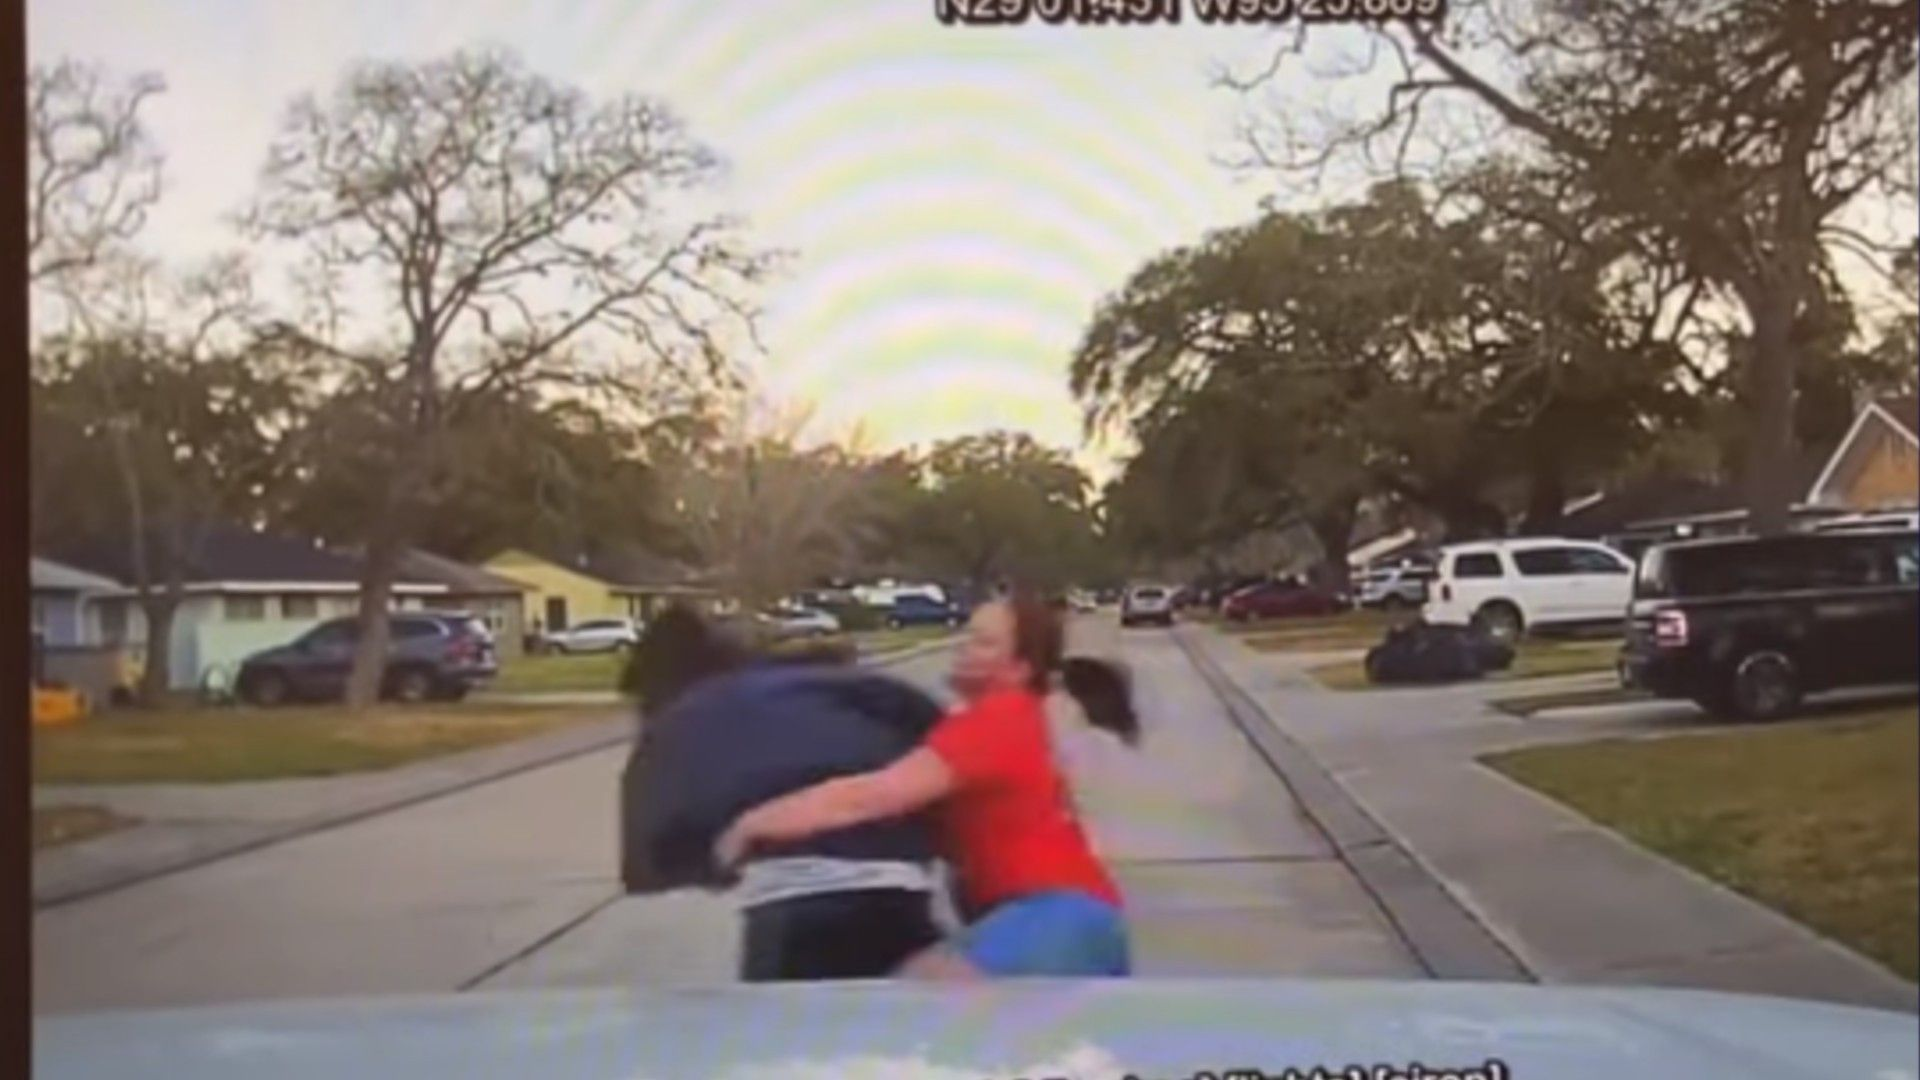 WATCH: Texas mom tackles man allegedly peeping into 15-year-old daughter's bedroom window